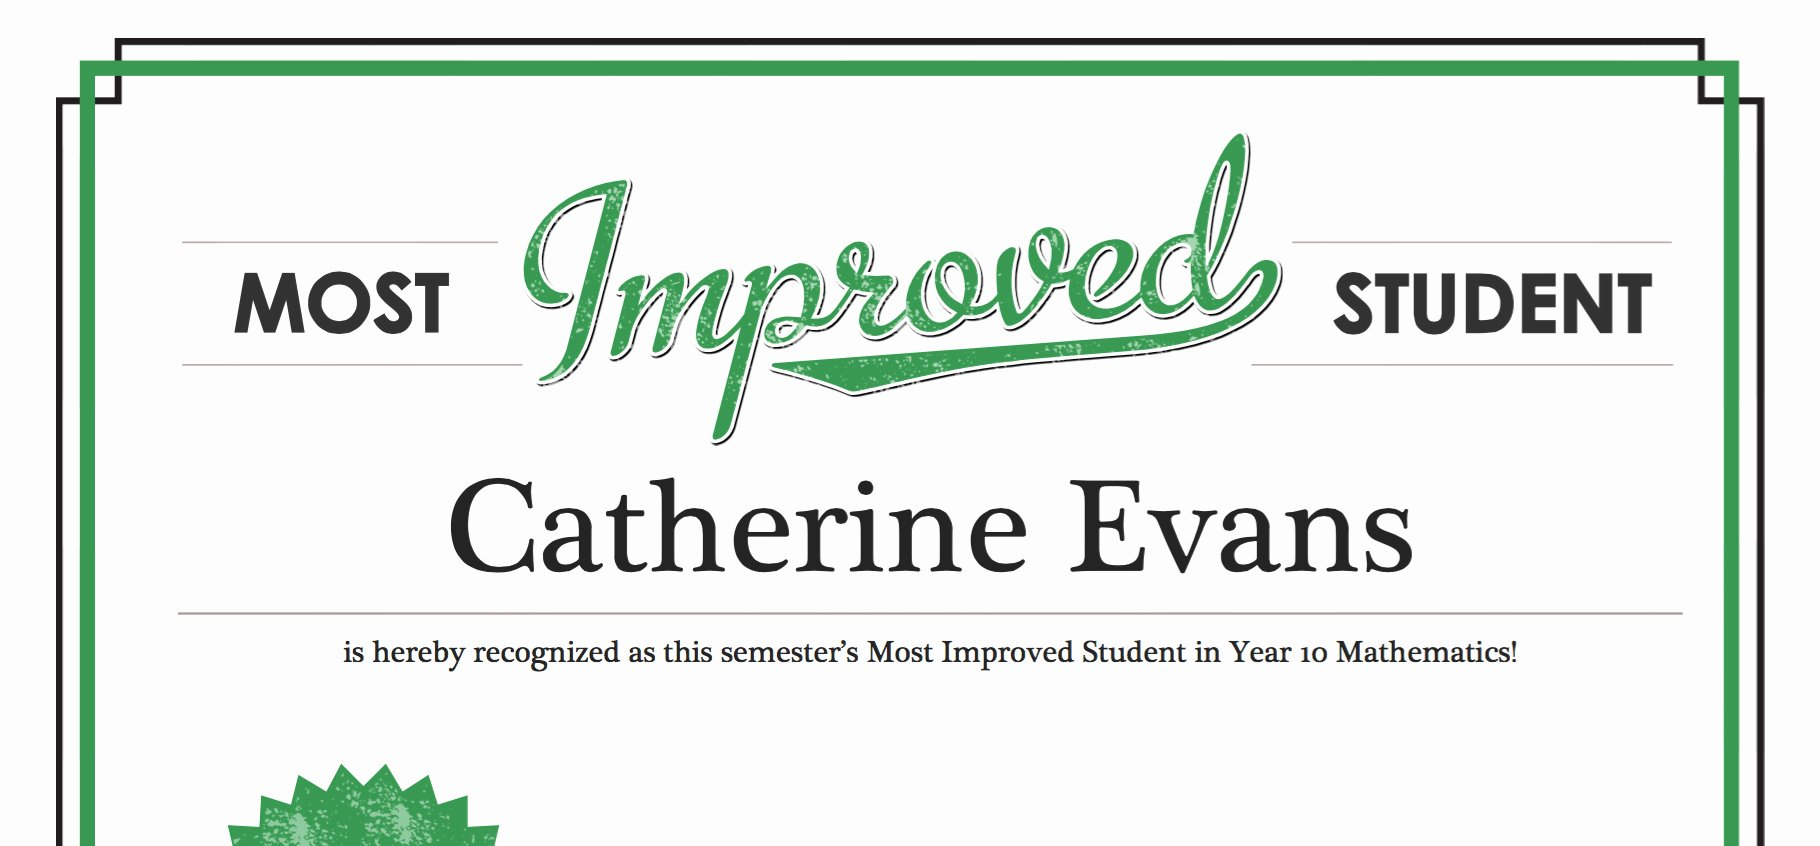 Most Improved Student Certificate Lovely 30 Most Improved Student Certificate